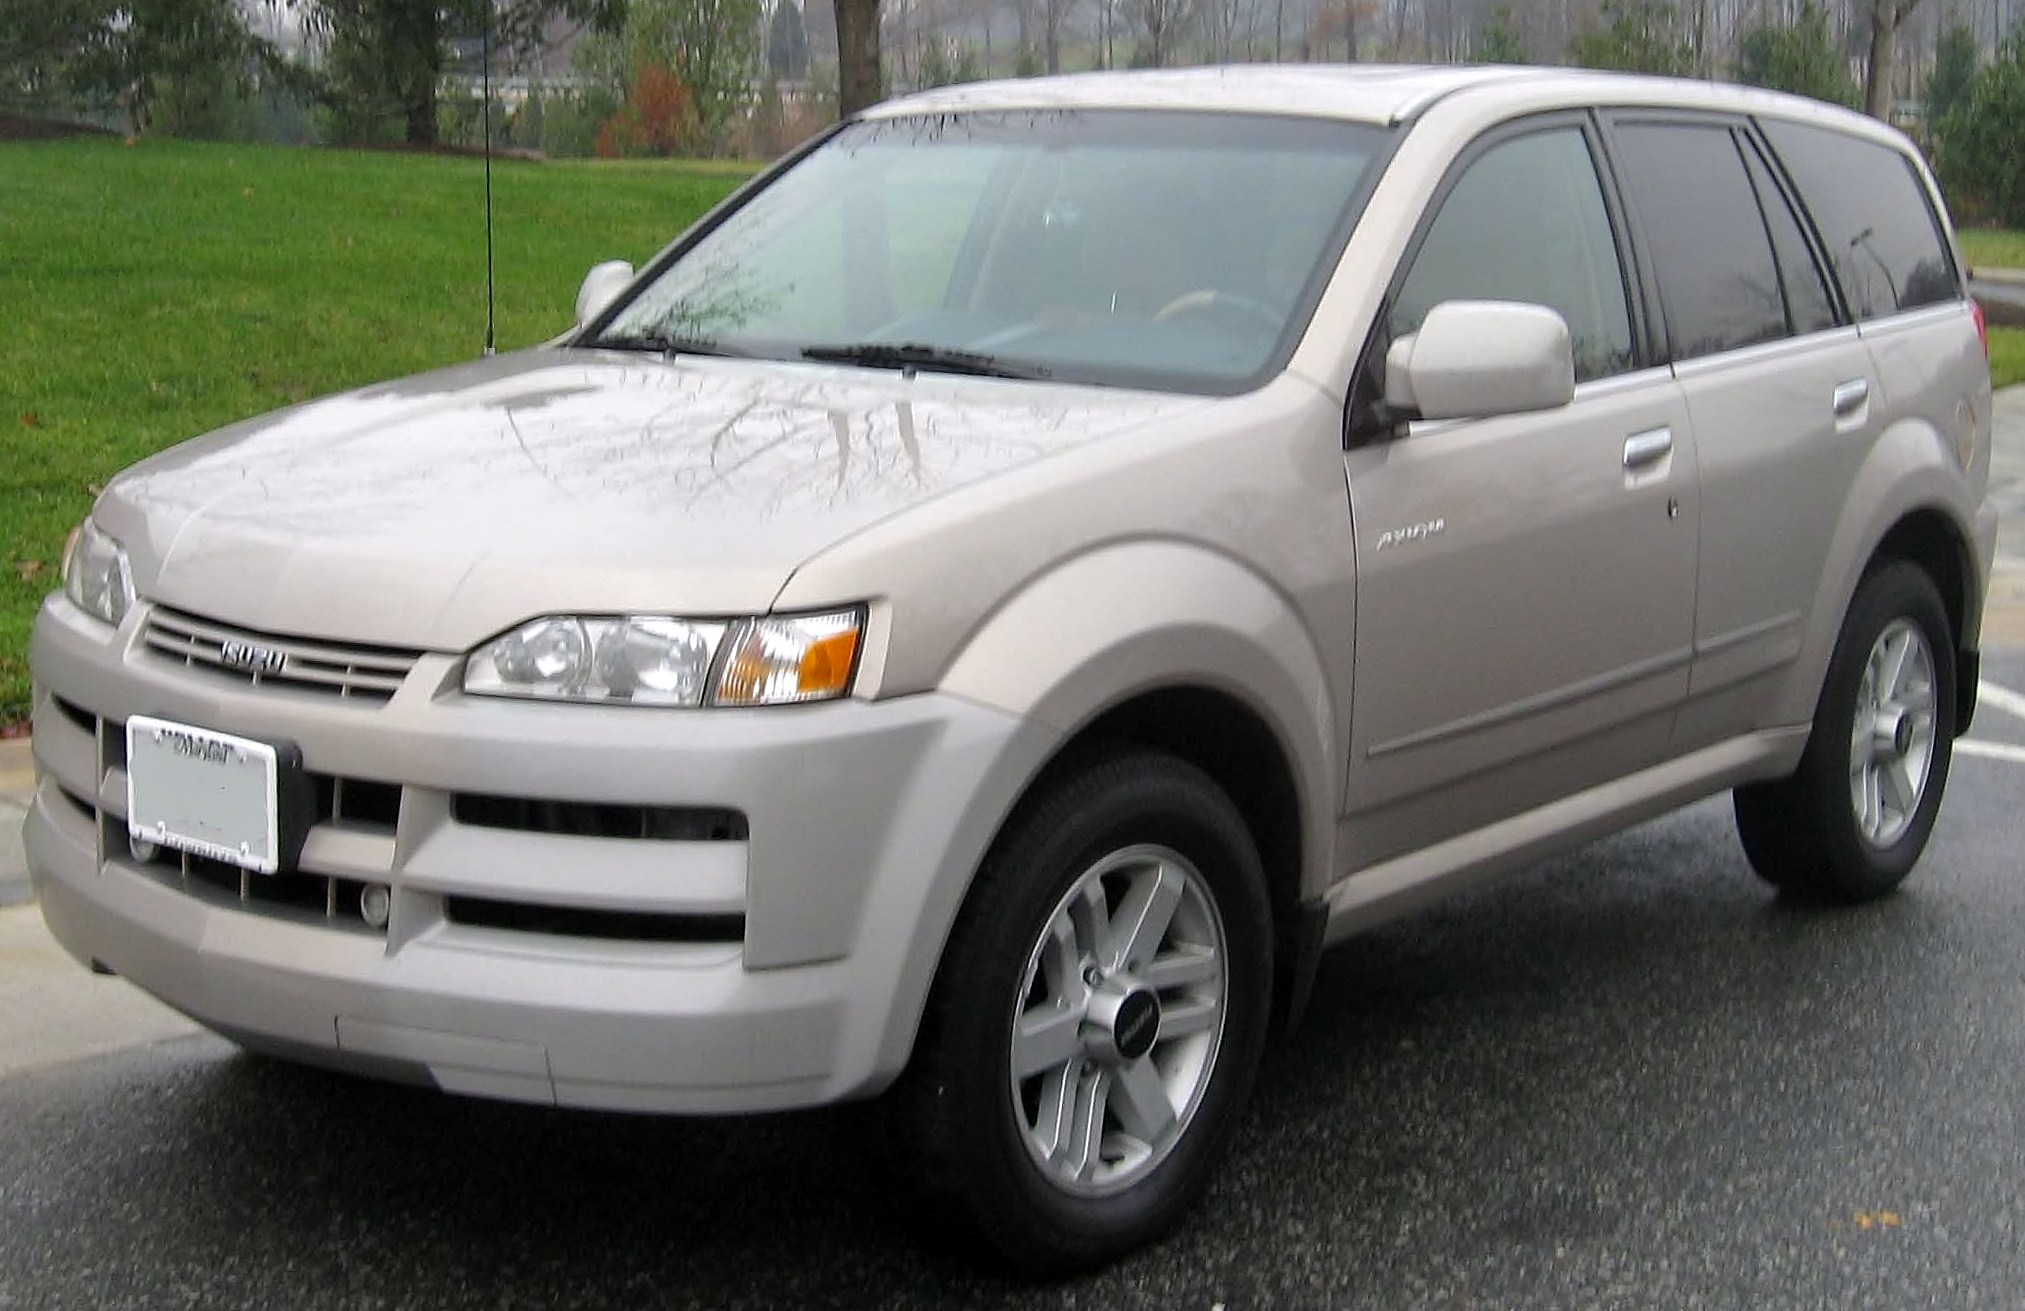 2002 Isuzu Axiom #1